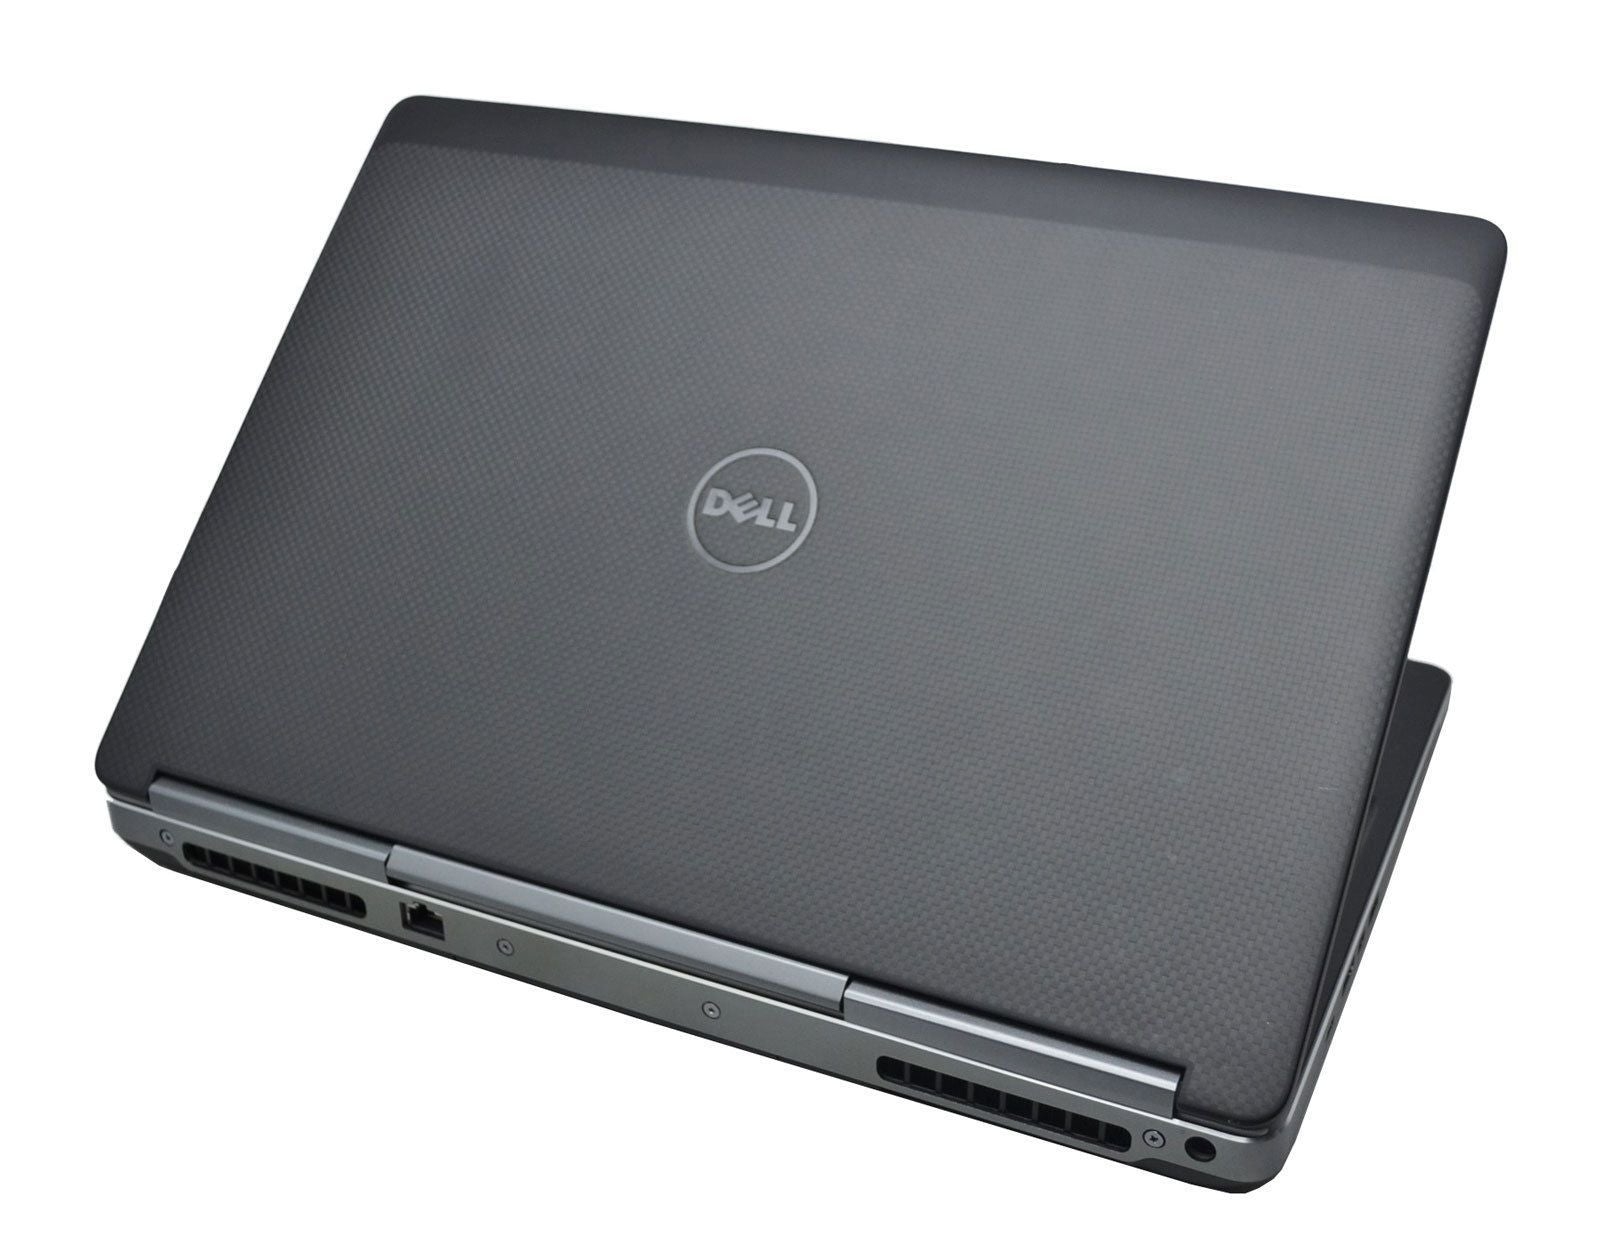 Dell Precision CAD 7520 Laptop: Core i7-6820HQ, 256GB, 16GB RAM, Quadro M2200 - CruiseTech